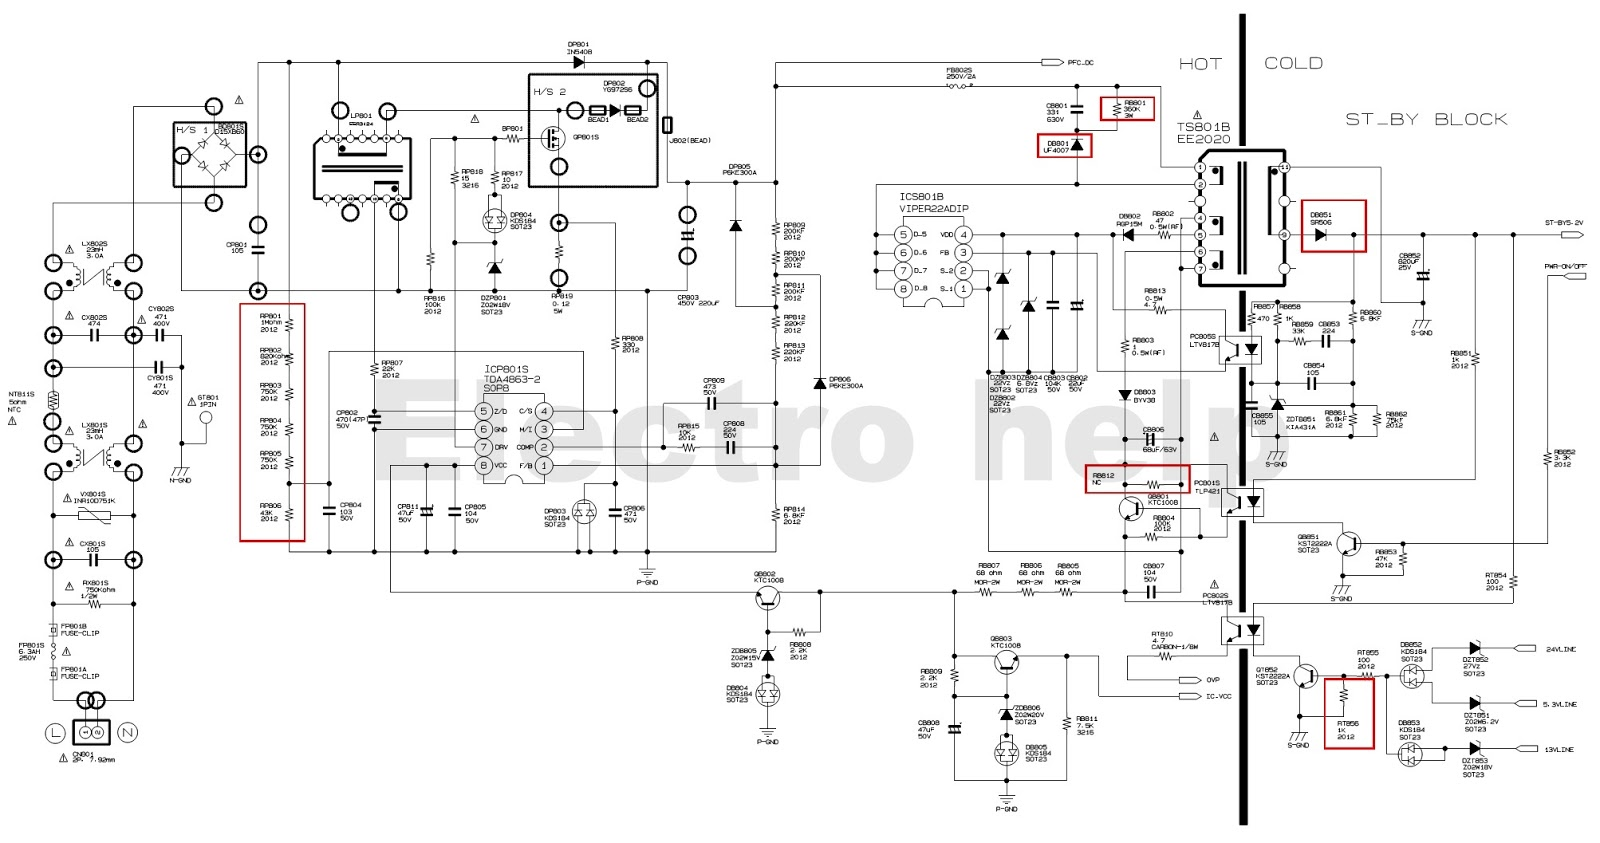 samsung schematic diagrams bn4400157a - samsung led lcd tv smps schematic - tda4863 ... 1988 blazer wiring schematic diagrams